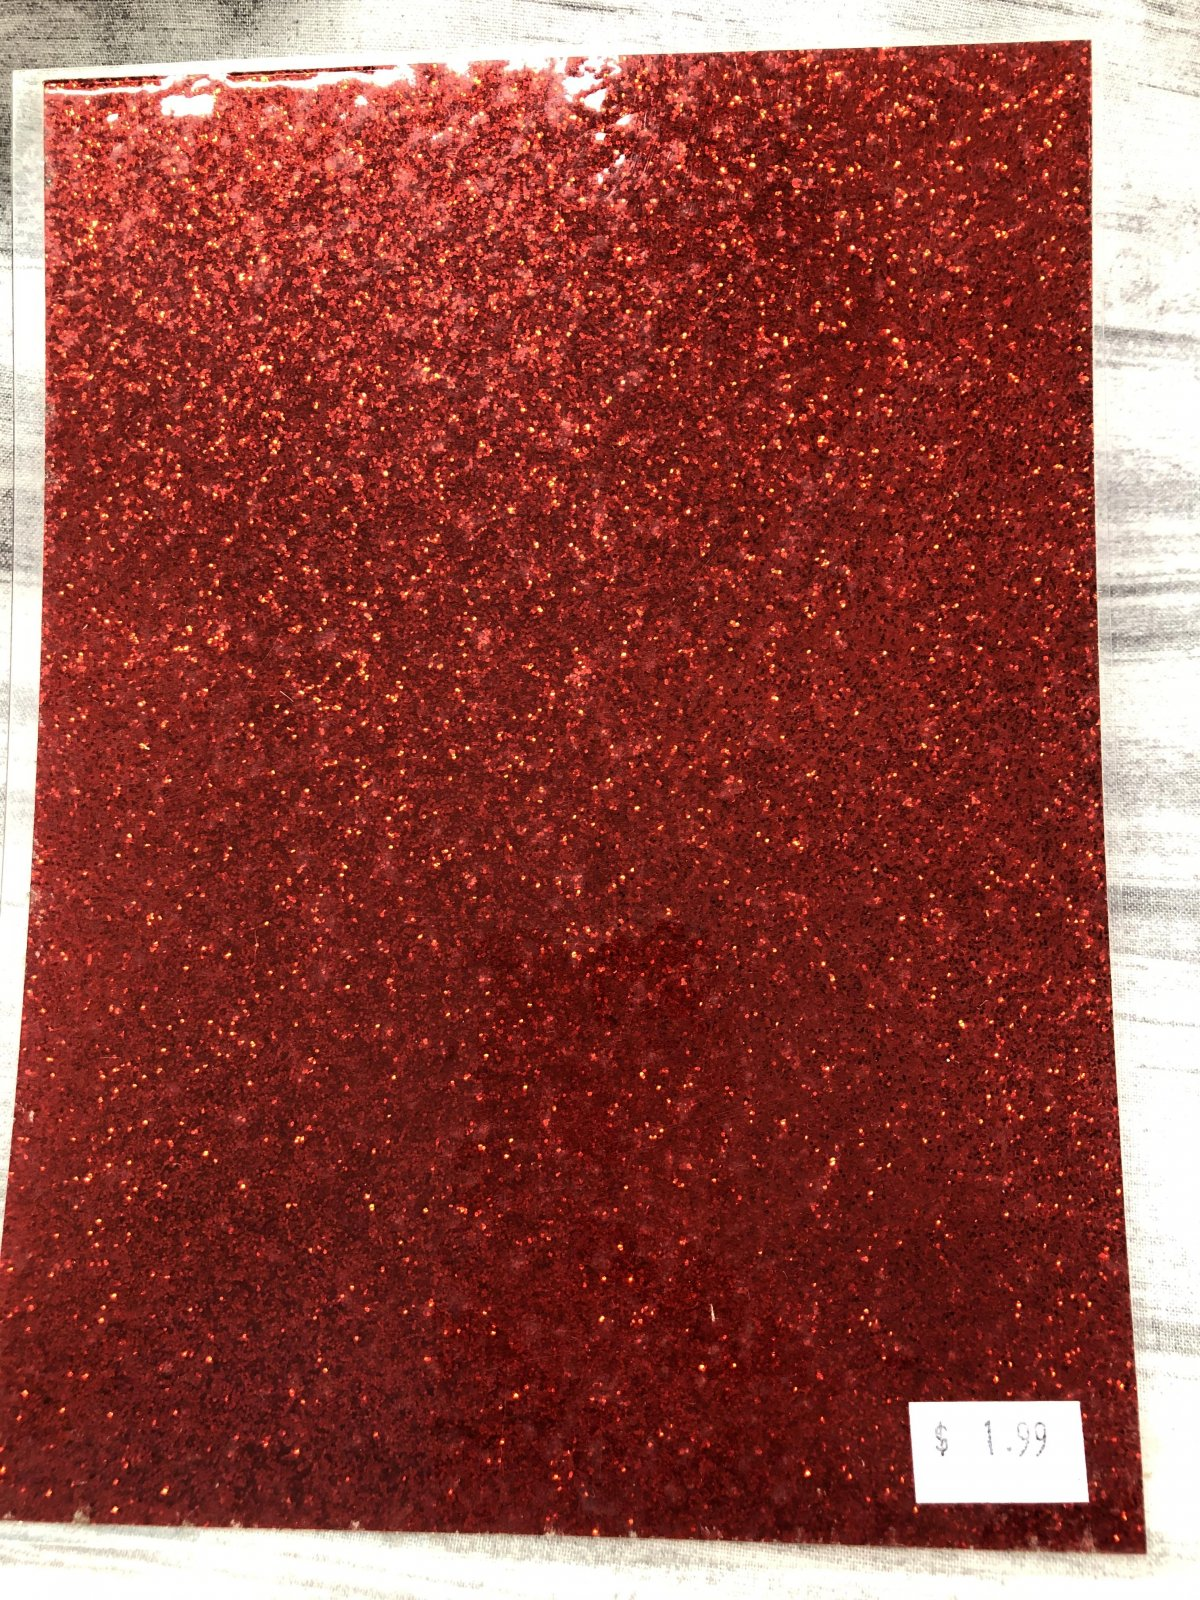 Stained Glass Acrylic Sheeting - Red Sparkle